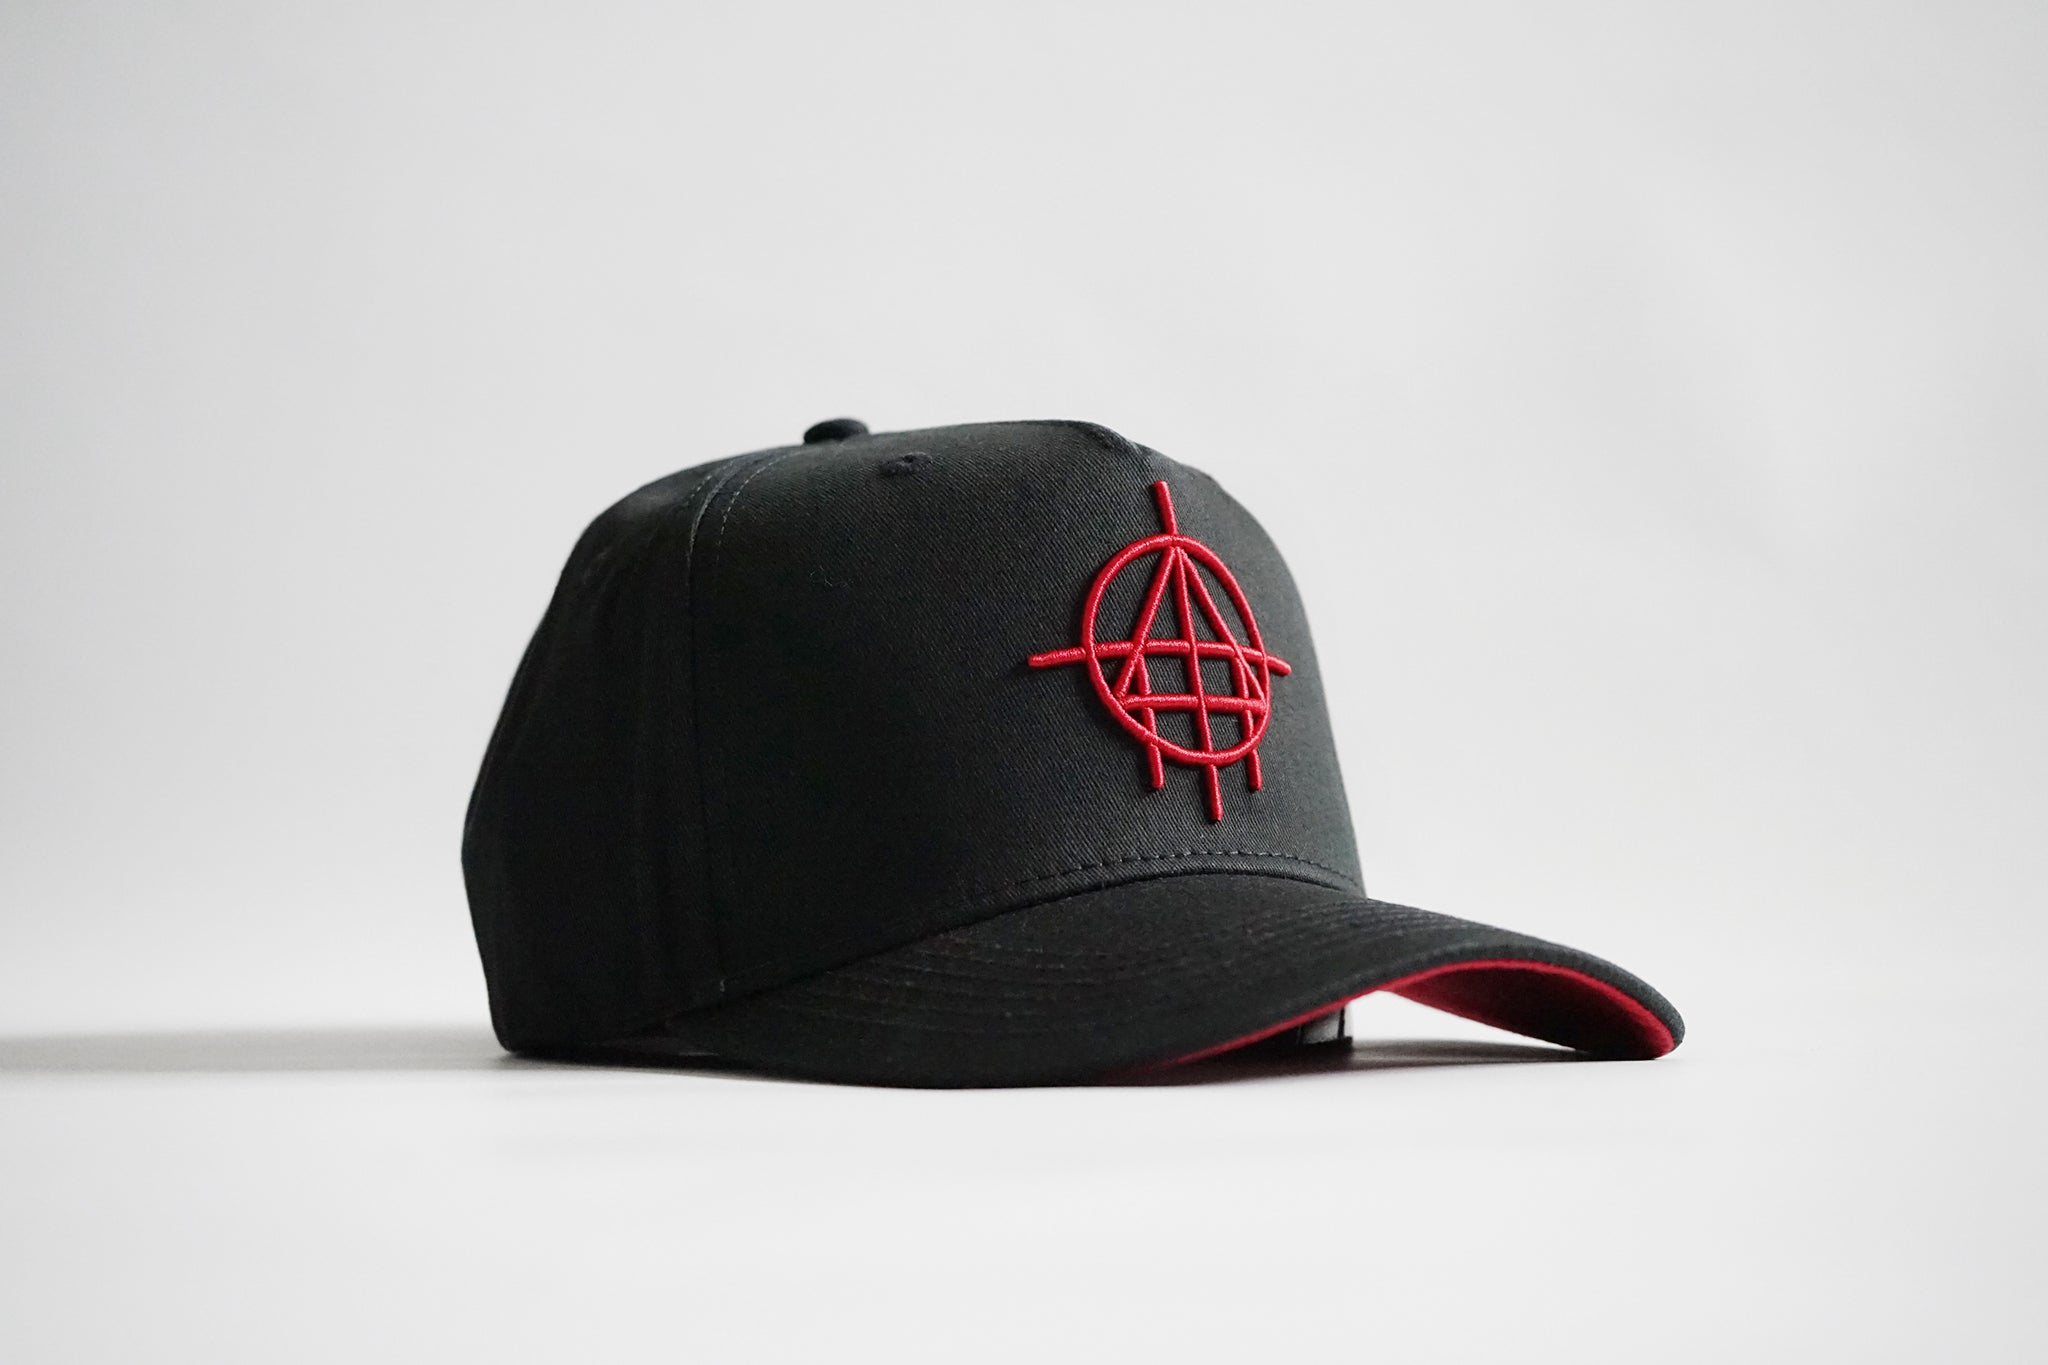 Baller 1.0 Aframe Snapback (Black/Red)